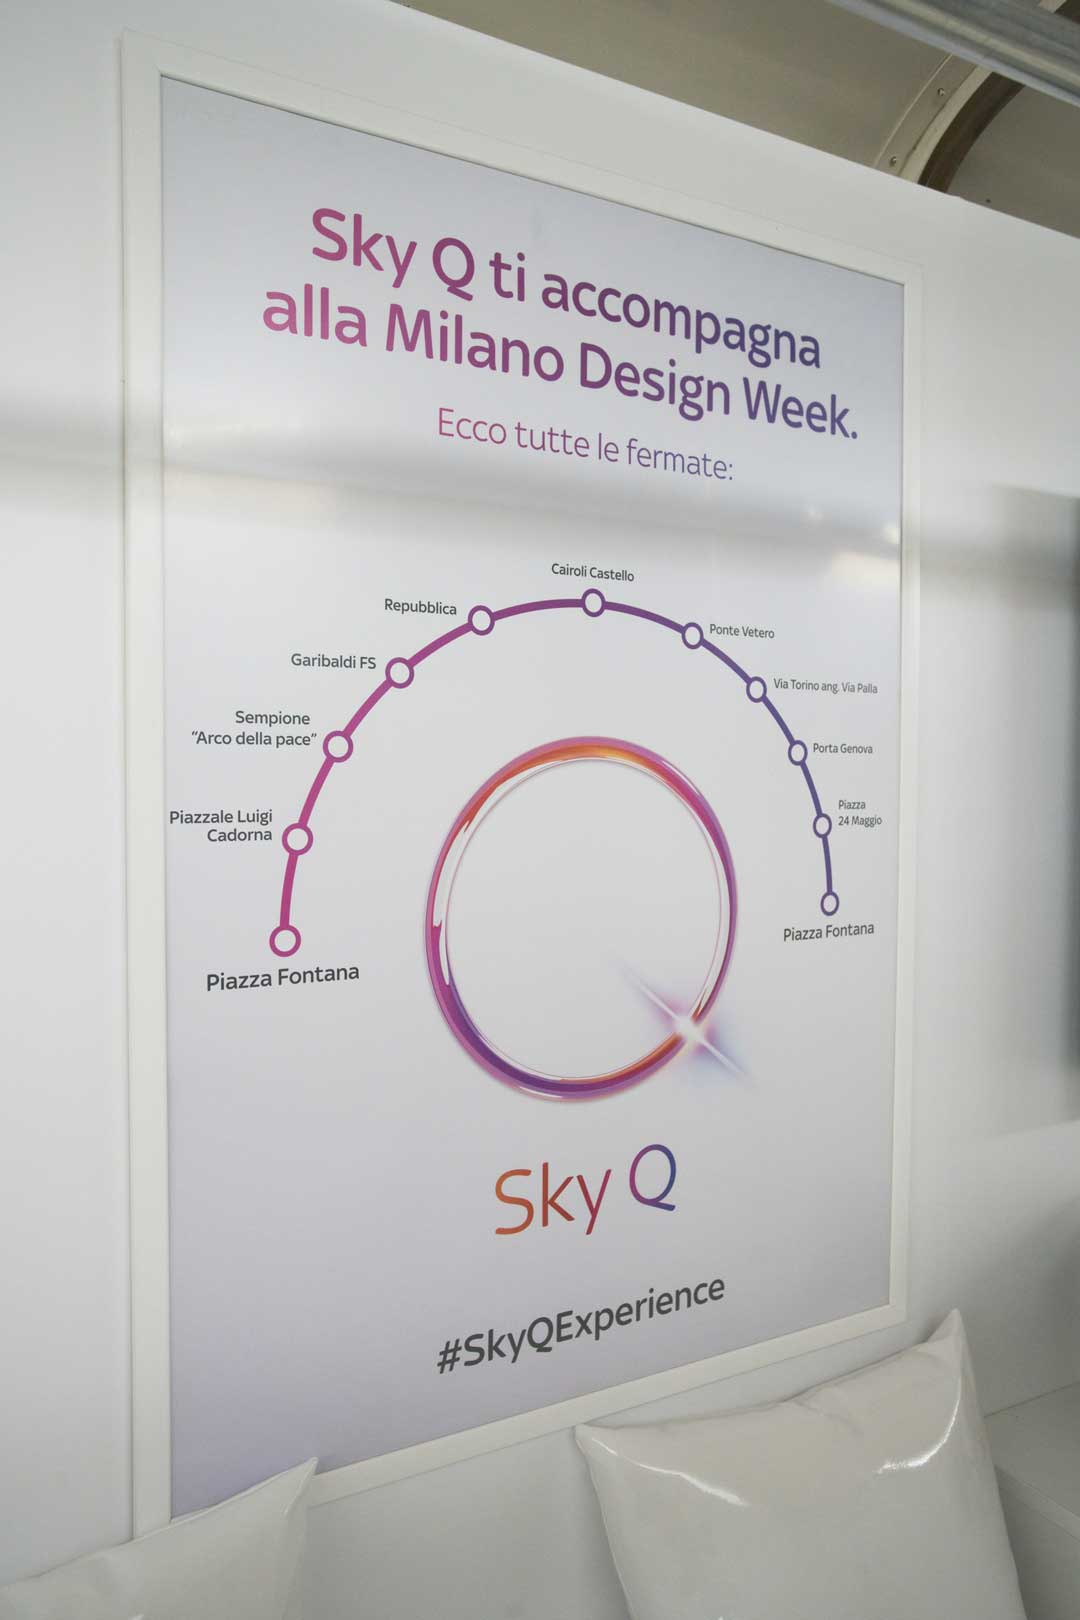 Sky Q Experience - Milano Design Week